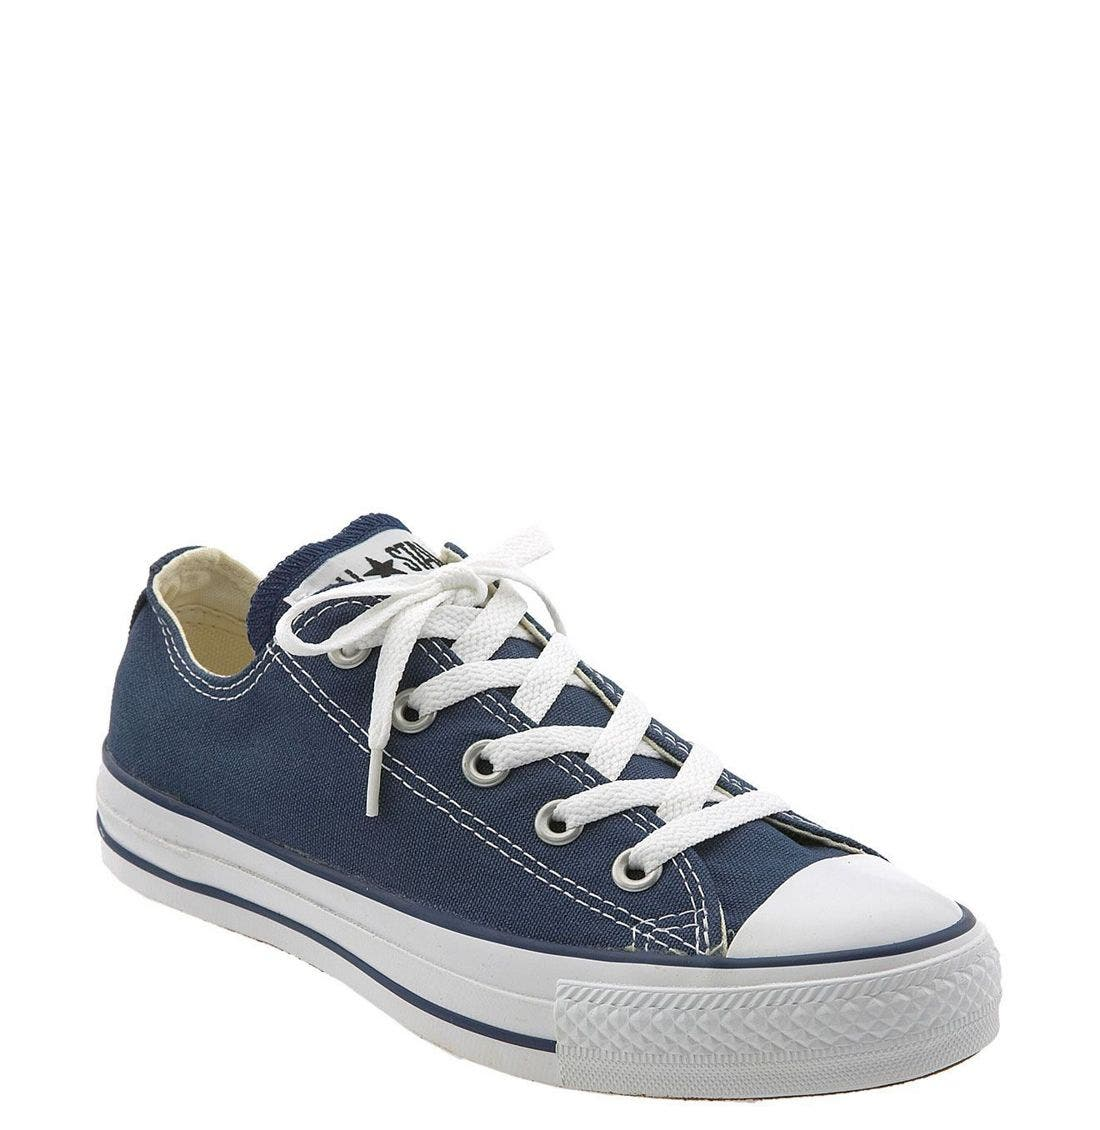 Main Image - Converse Chuck Taylor® Low Top Sneaker (Women)